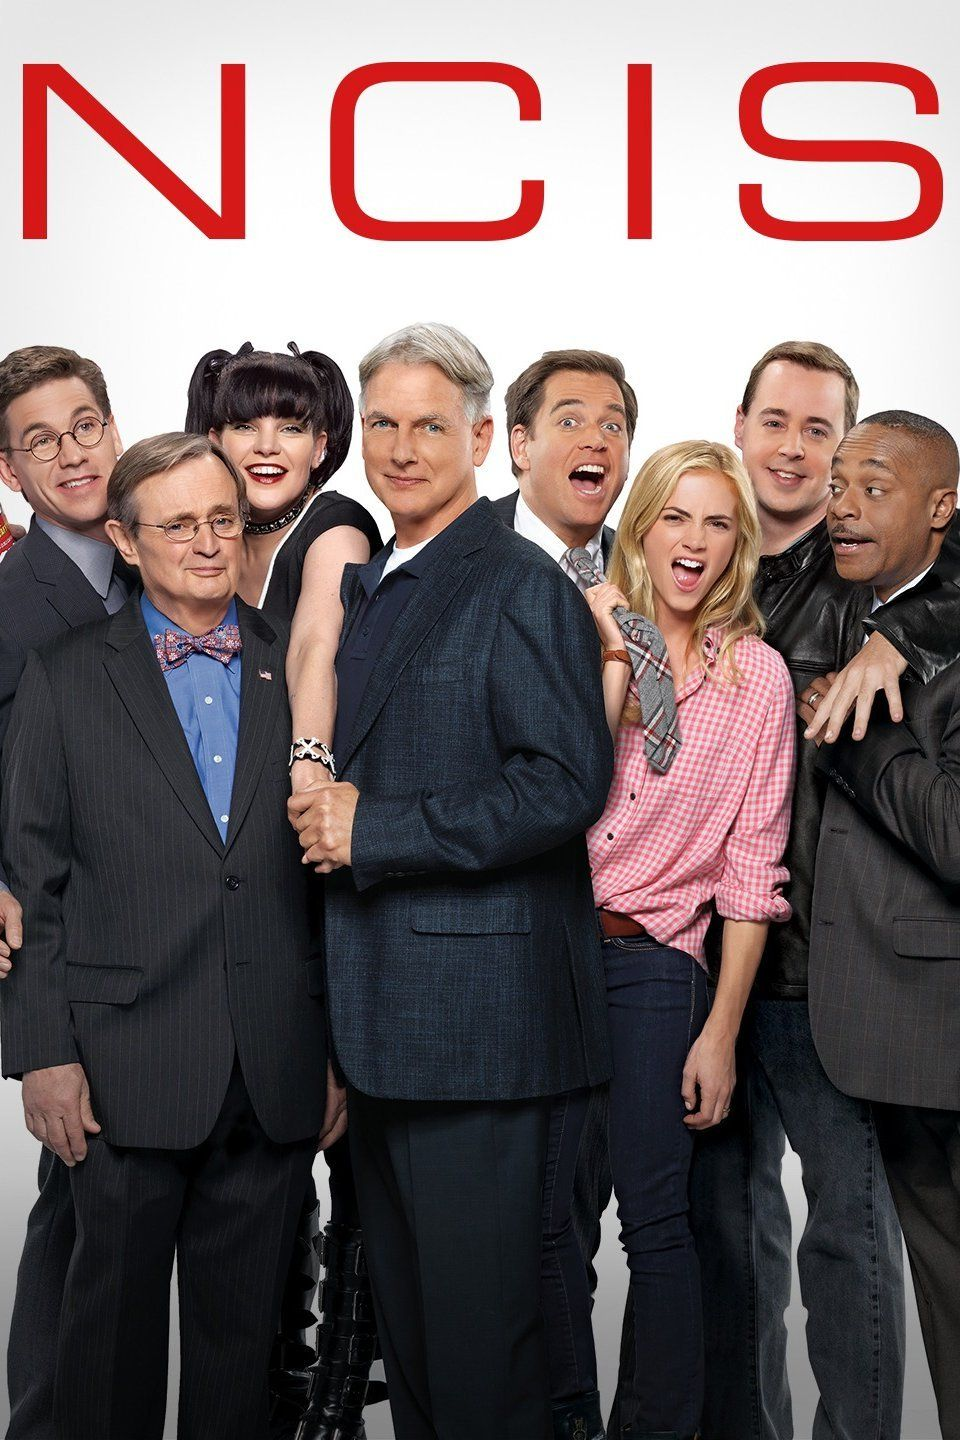 Ncis Season 13 Spoilers News And Updates 300th Episode